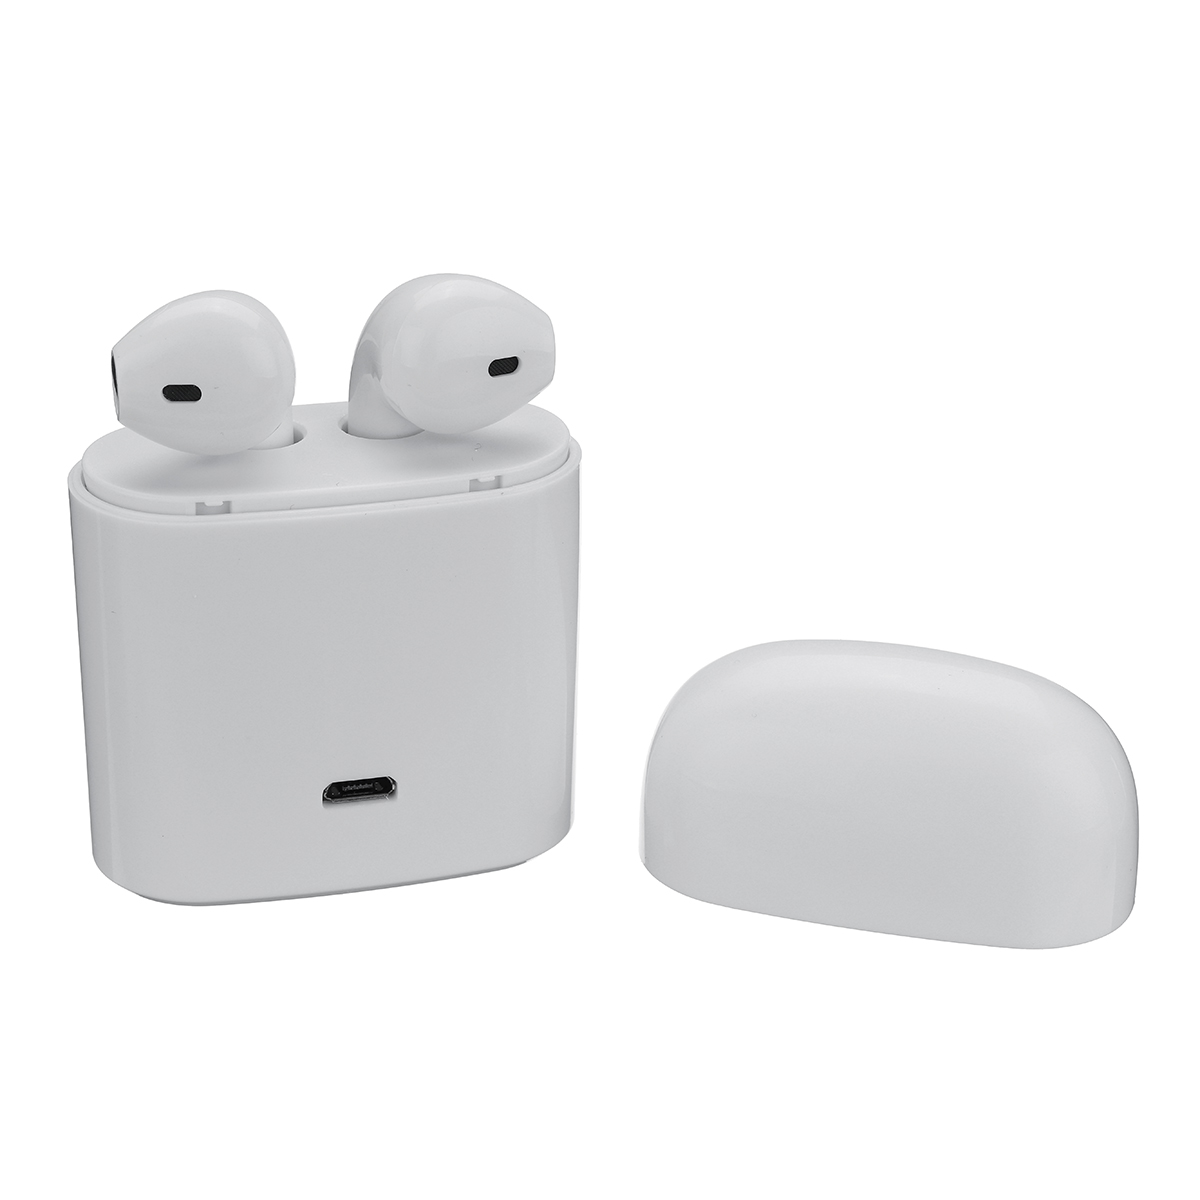 Bluetooth In-Ear Headphone Earbud Wireless Headset Stereo Earpiece Earphone With Noise Canceling Mic for iPhone/Samsung Galaxy remax mini bluetooth 4 1 earphone car calls wireless invisible head phone earbud noise canceling with mic for iphone mi phone